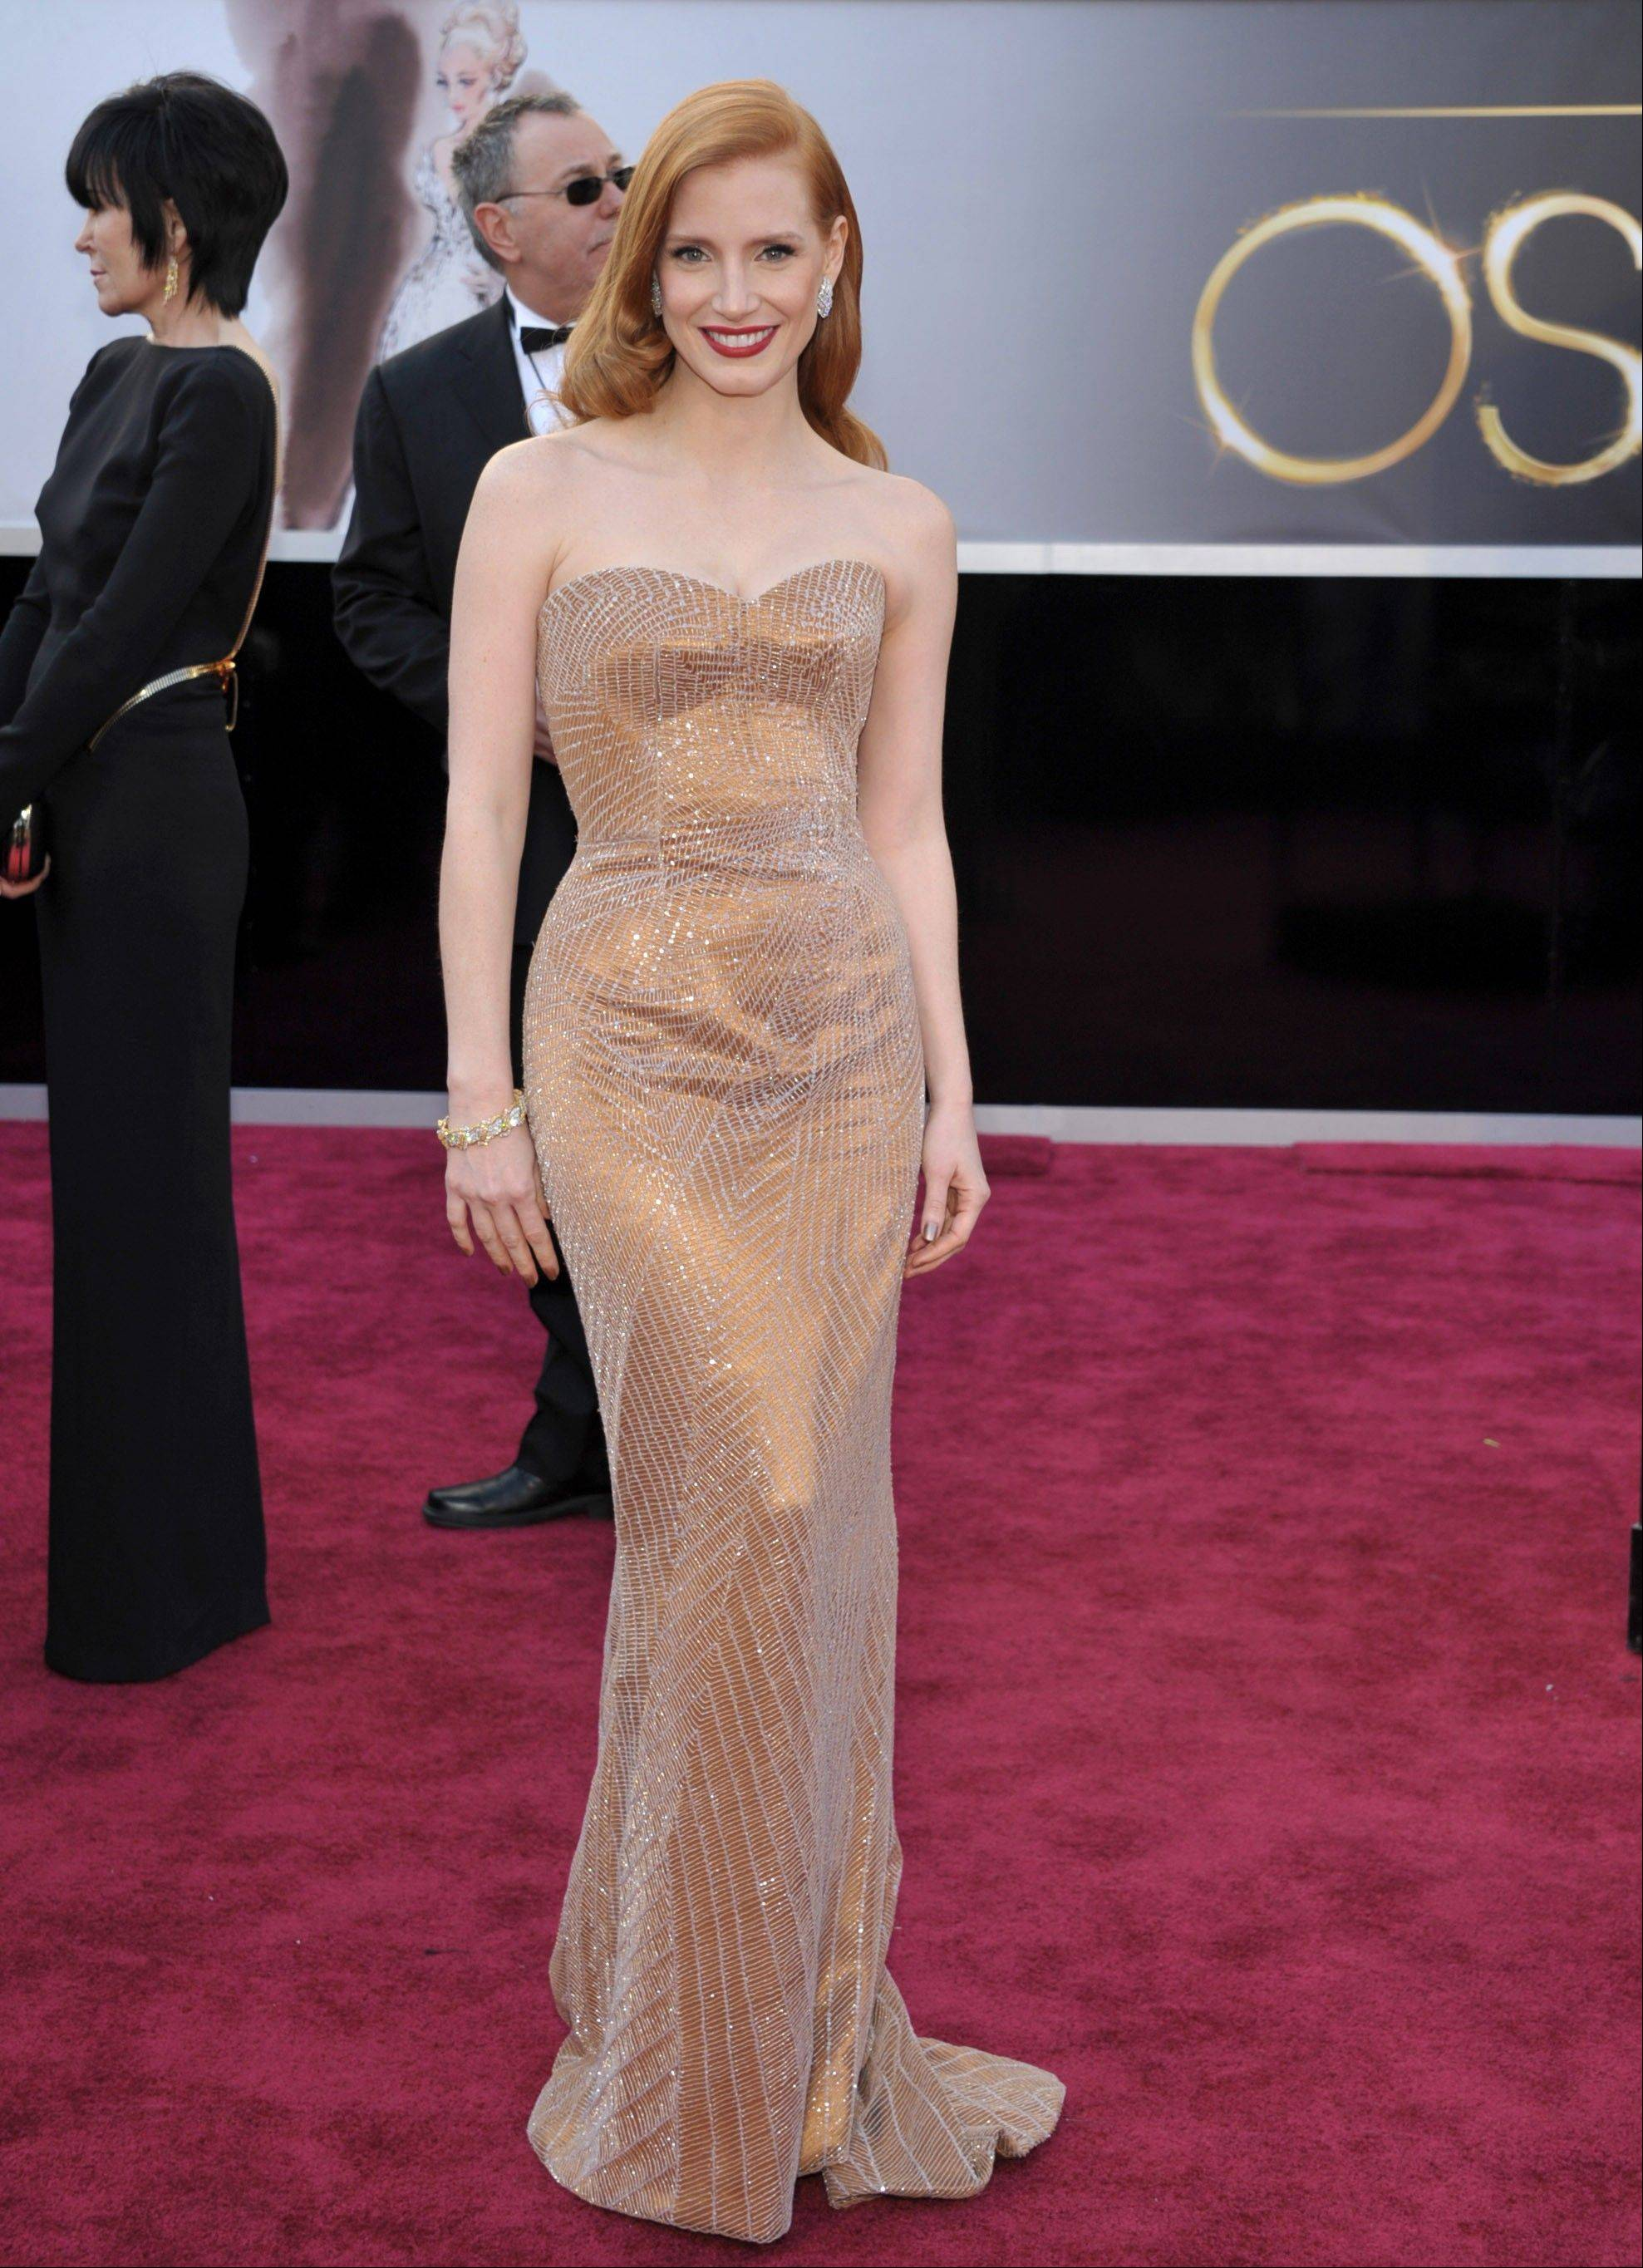 """Zero Dark Thirty"" star and Oscar nominee Jessica Chastain dials up the glam in Armani."